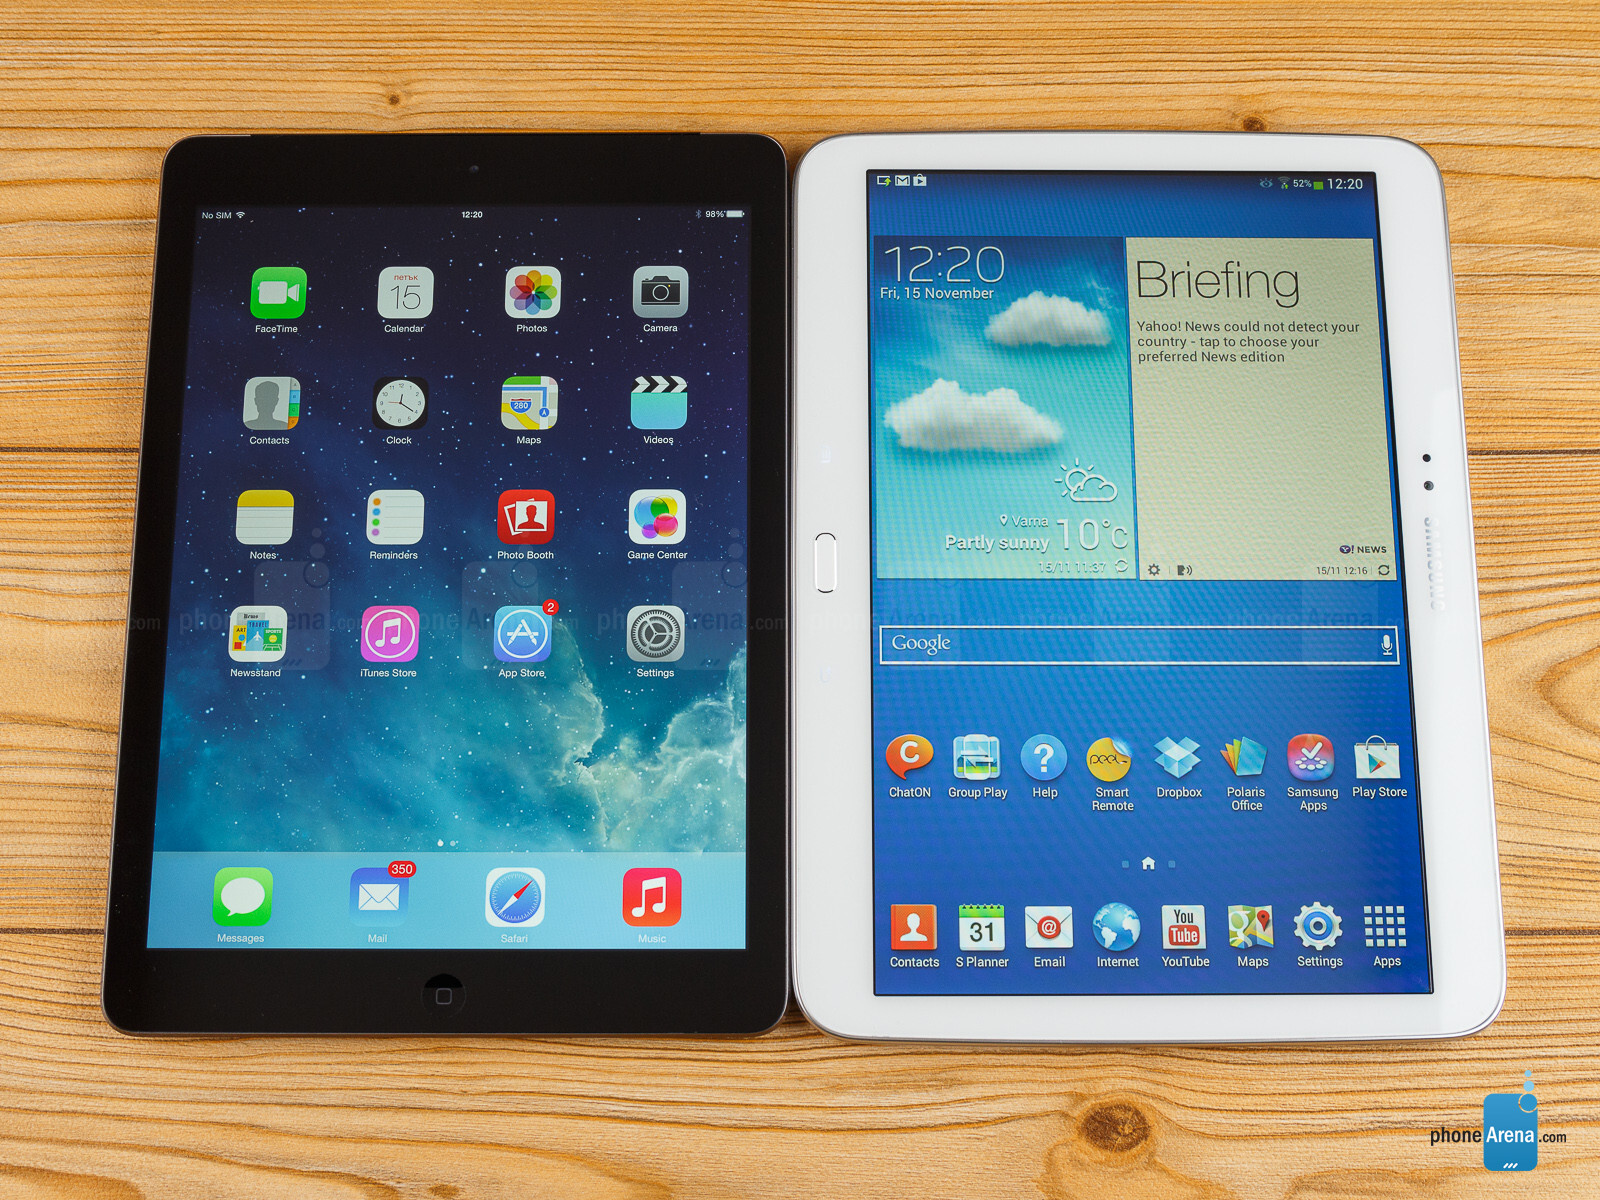 ipad vs galaxy tablet Find here comparison of apple ipad (2018) wi-fi vs samsung galaxy tab s2 97 vs samsung galaxy tab s2 8 tablets on the basis of screen size, storage, processor, ram, reviews, ratings and others .